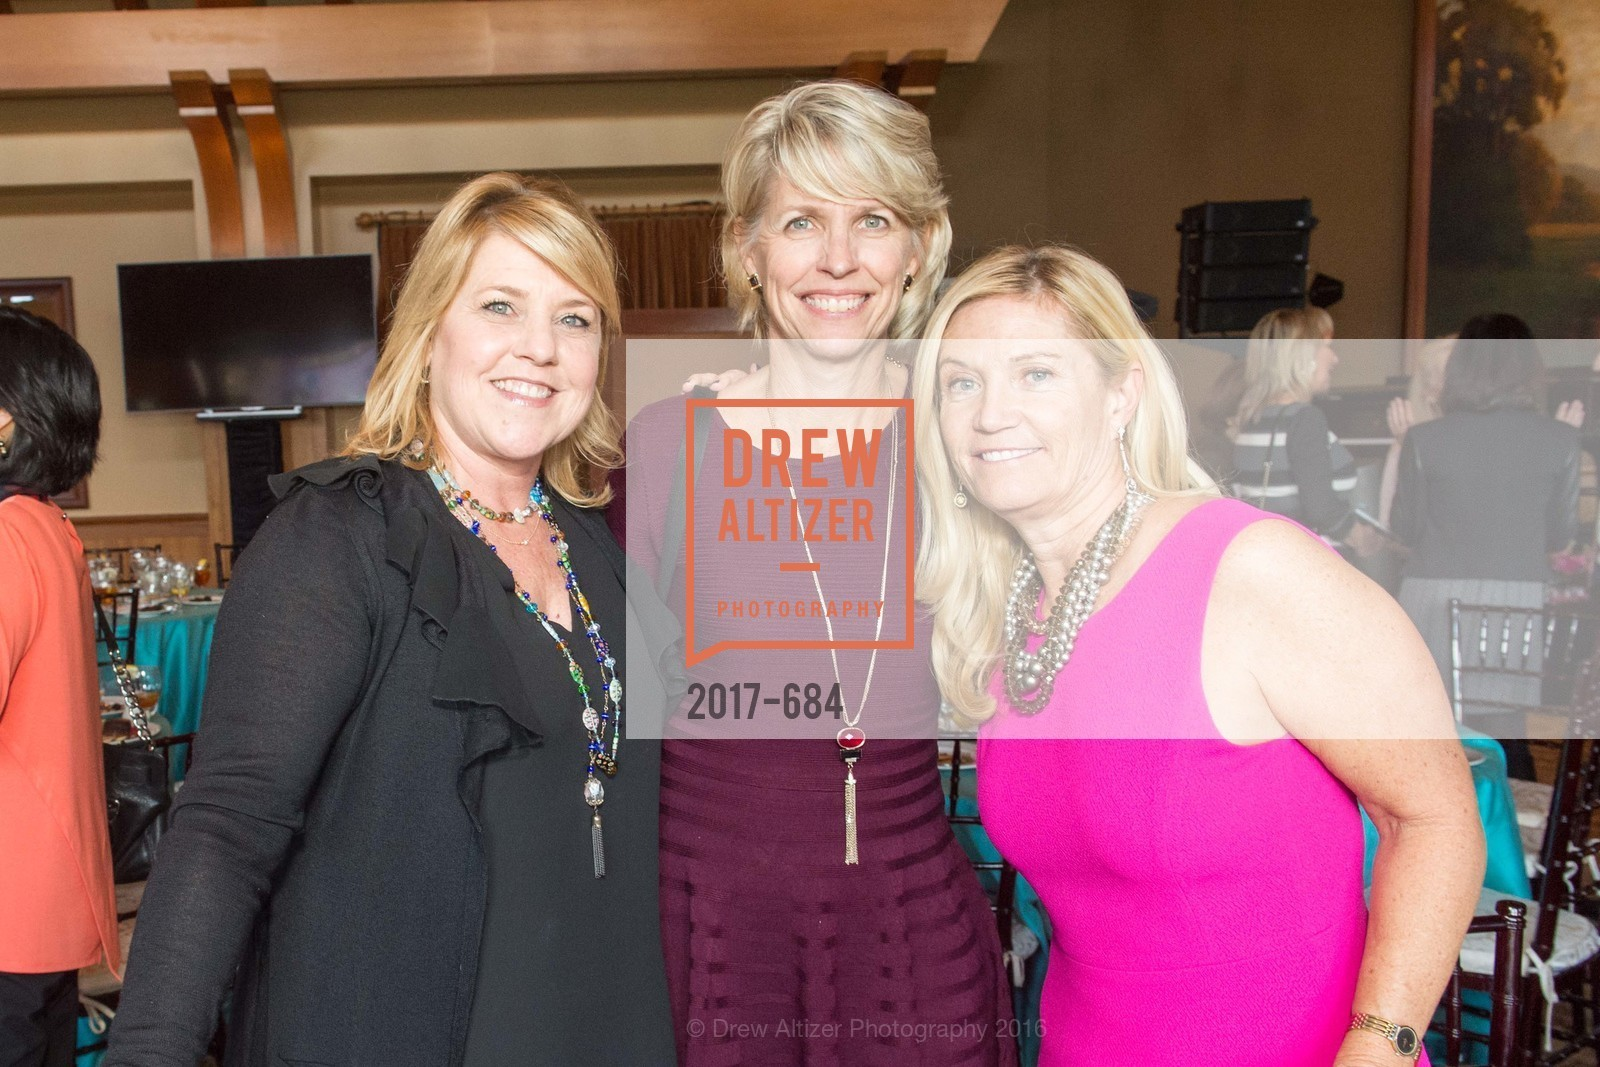 Marie Anderson, Sue Shea, Mary Stephens, Under One Umbrella, Sharon Heights Golf and Country Club, January 13th, 2016,Drew Altizer, Drew Altizer Photography, full-service agency, private events, San Francisco photographer, photographer california